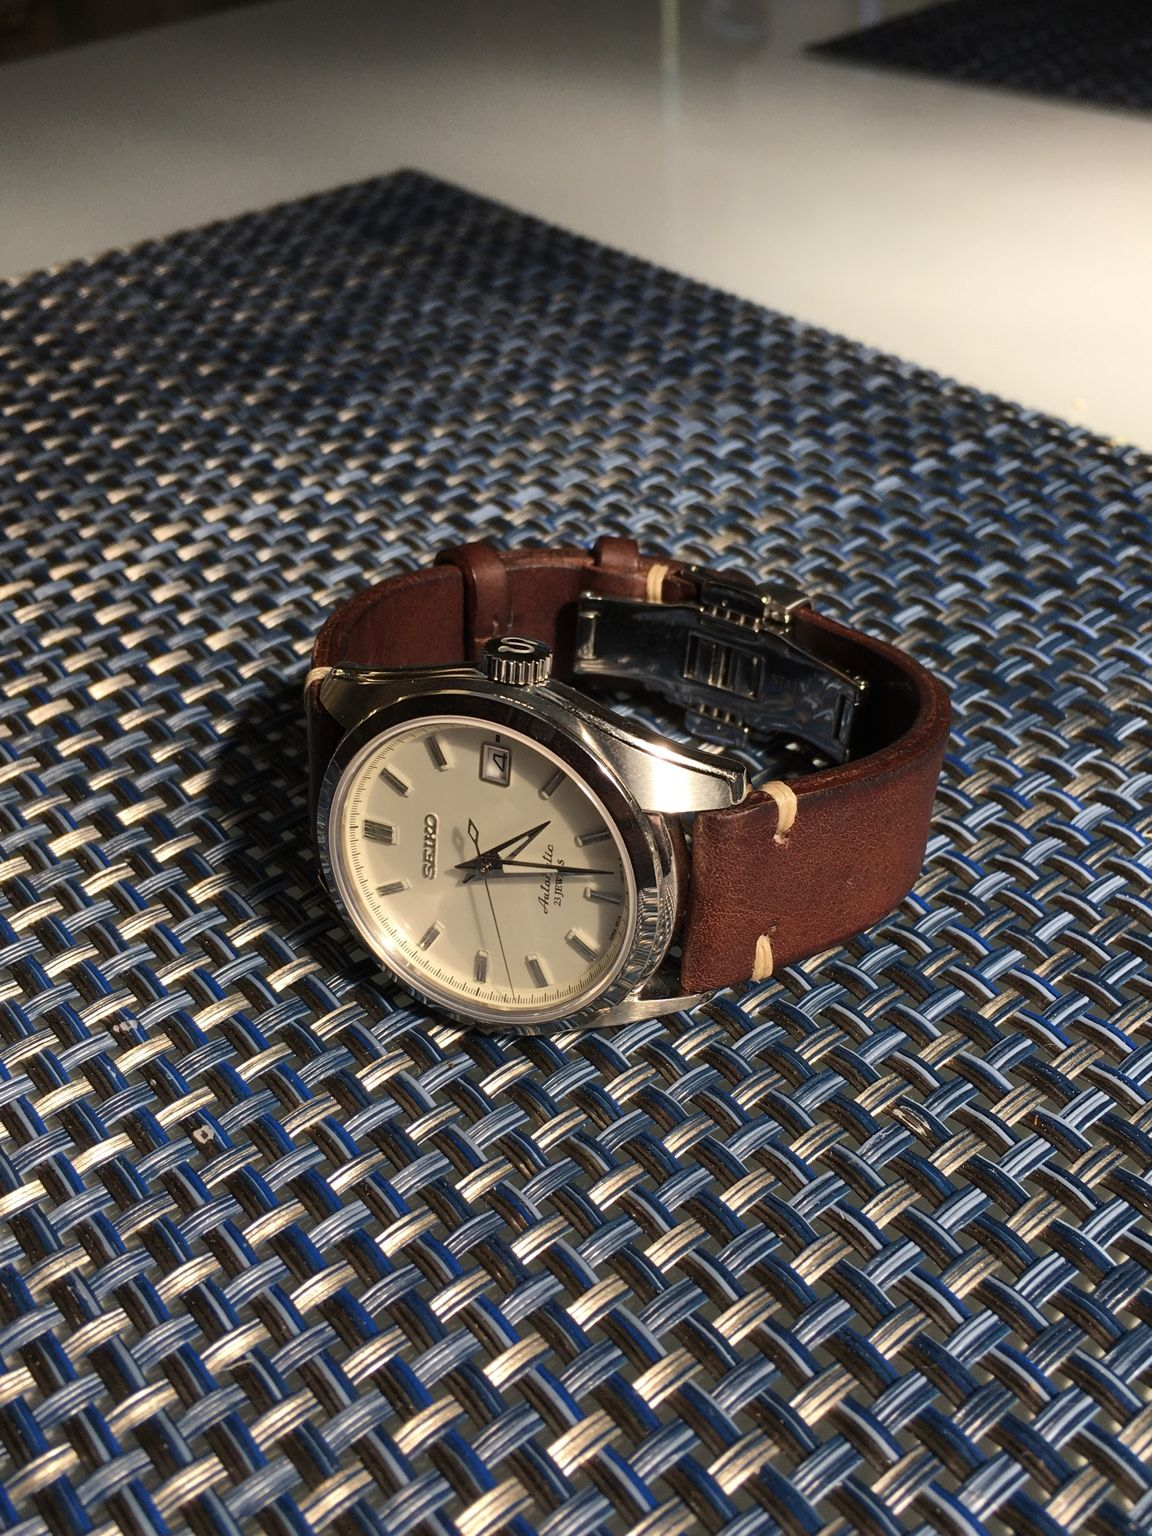 Sarb035 Just Arrived Need Help Choosing A Strap Watches In 2019